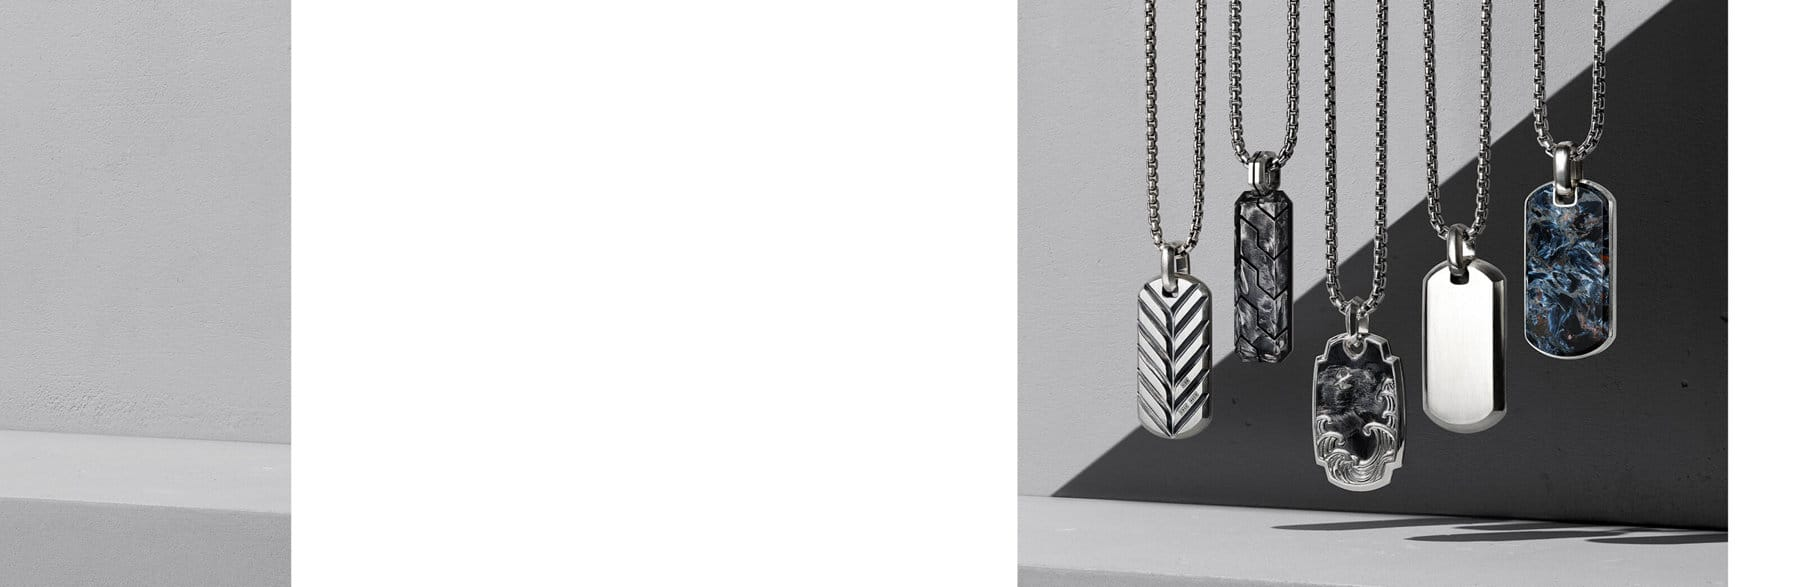 A color photograph shows a row of five David Yurman tags from the Streamline, Forged Carbon, Waves and Exotic Stone collections atop a grey background. Each is crafted from sterling silver with or without forged carbon or pietersite.